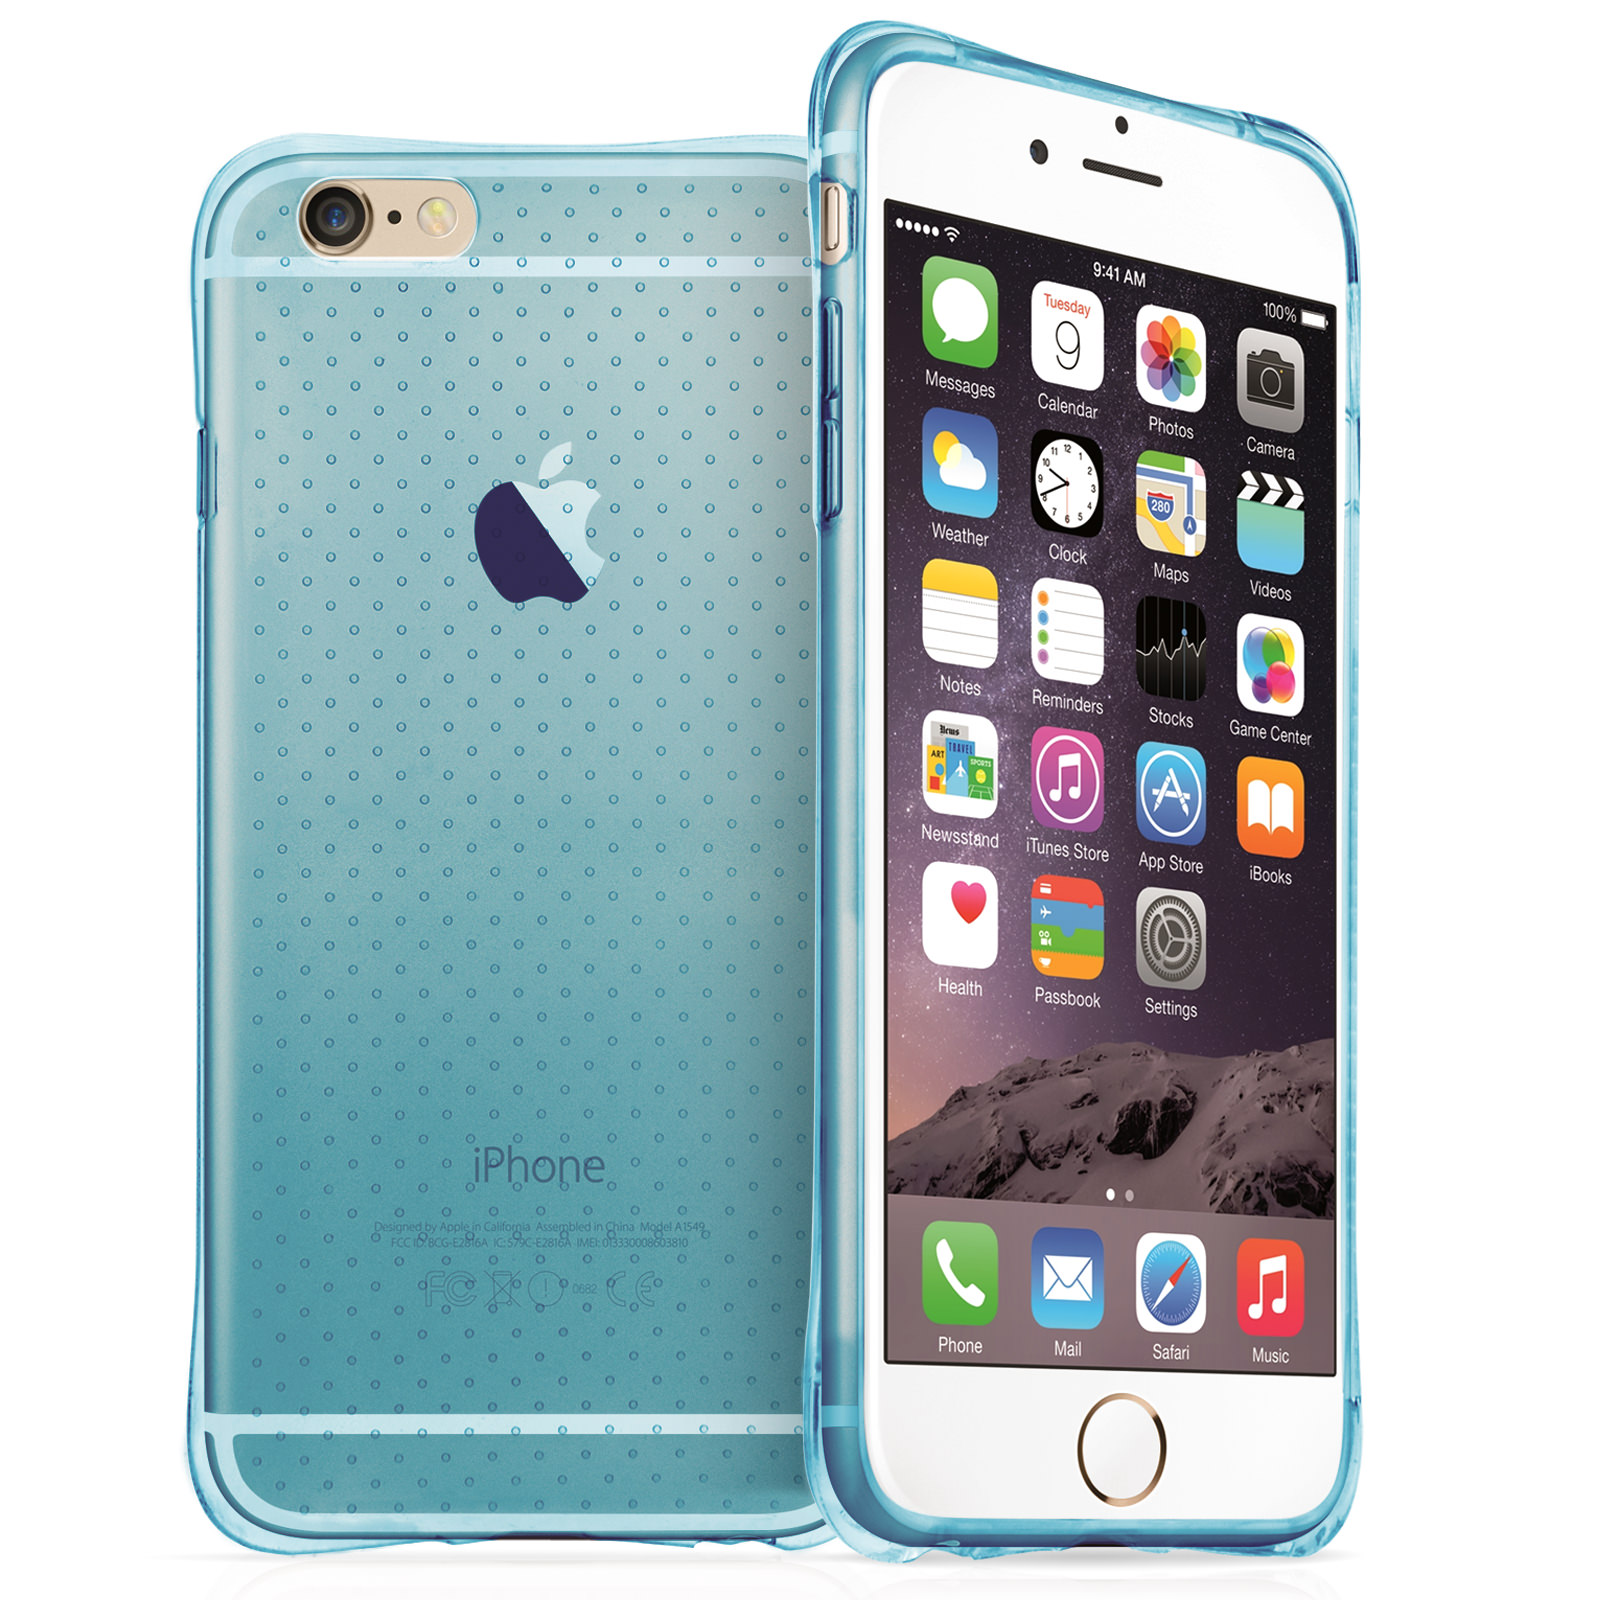 Yousave Accessories iPhone 6 Plus and 6s Plus Air Cushion Gel - Blue Case